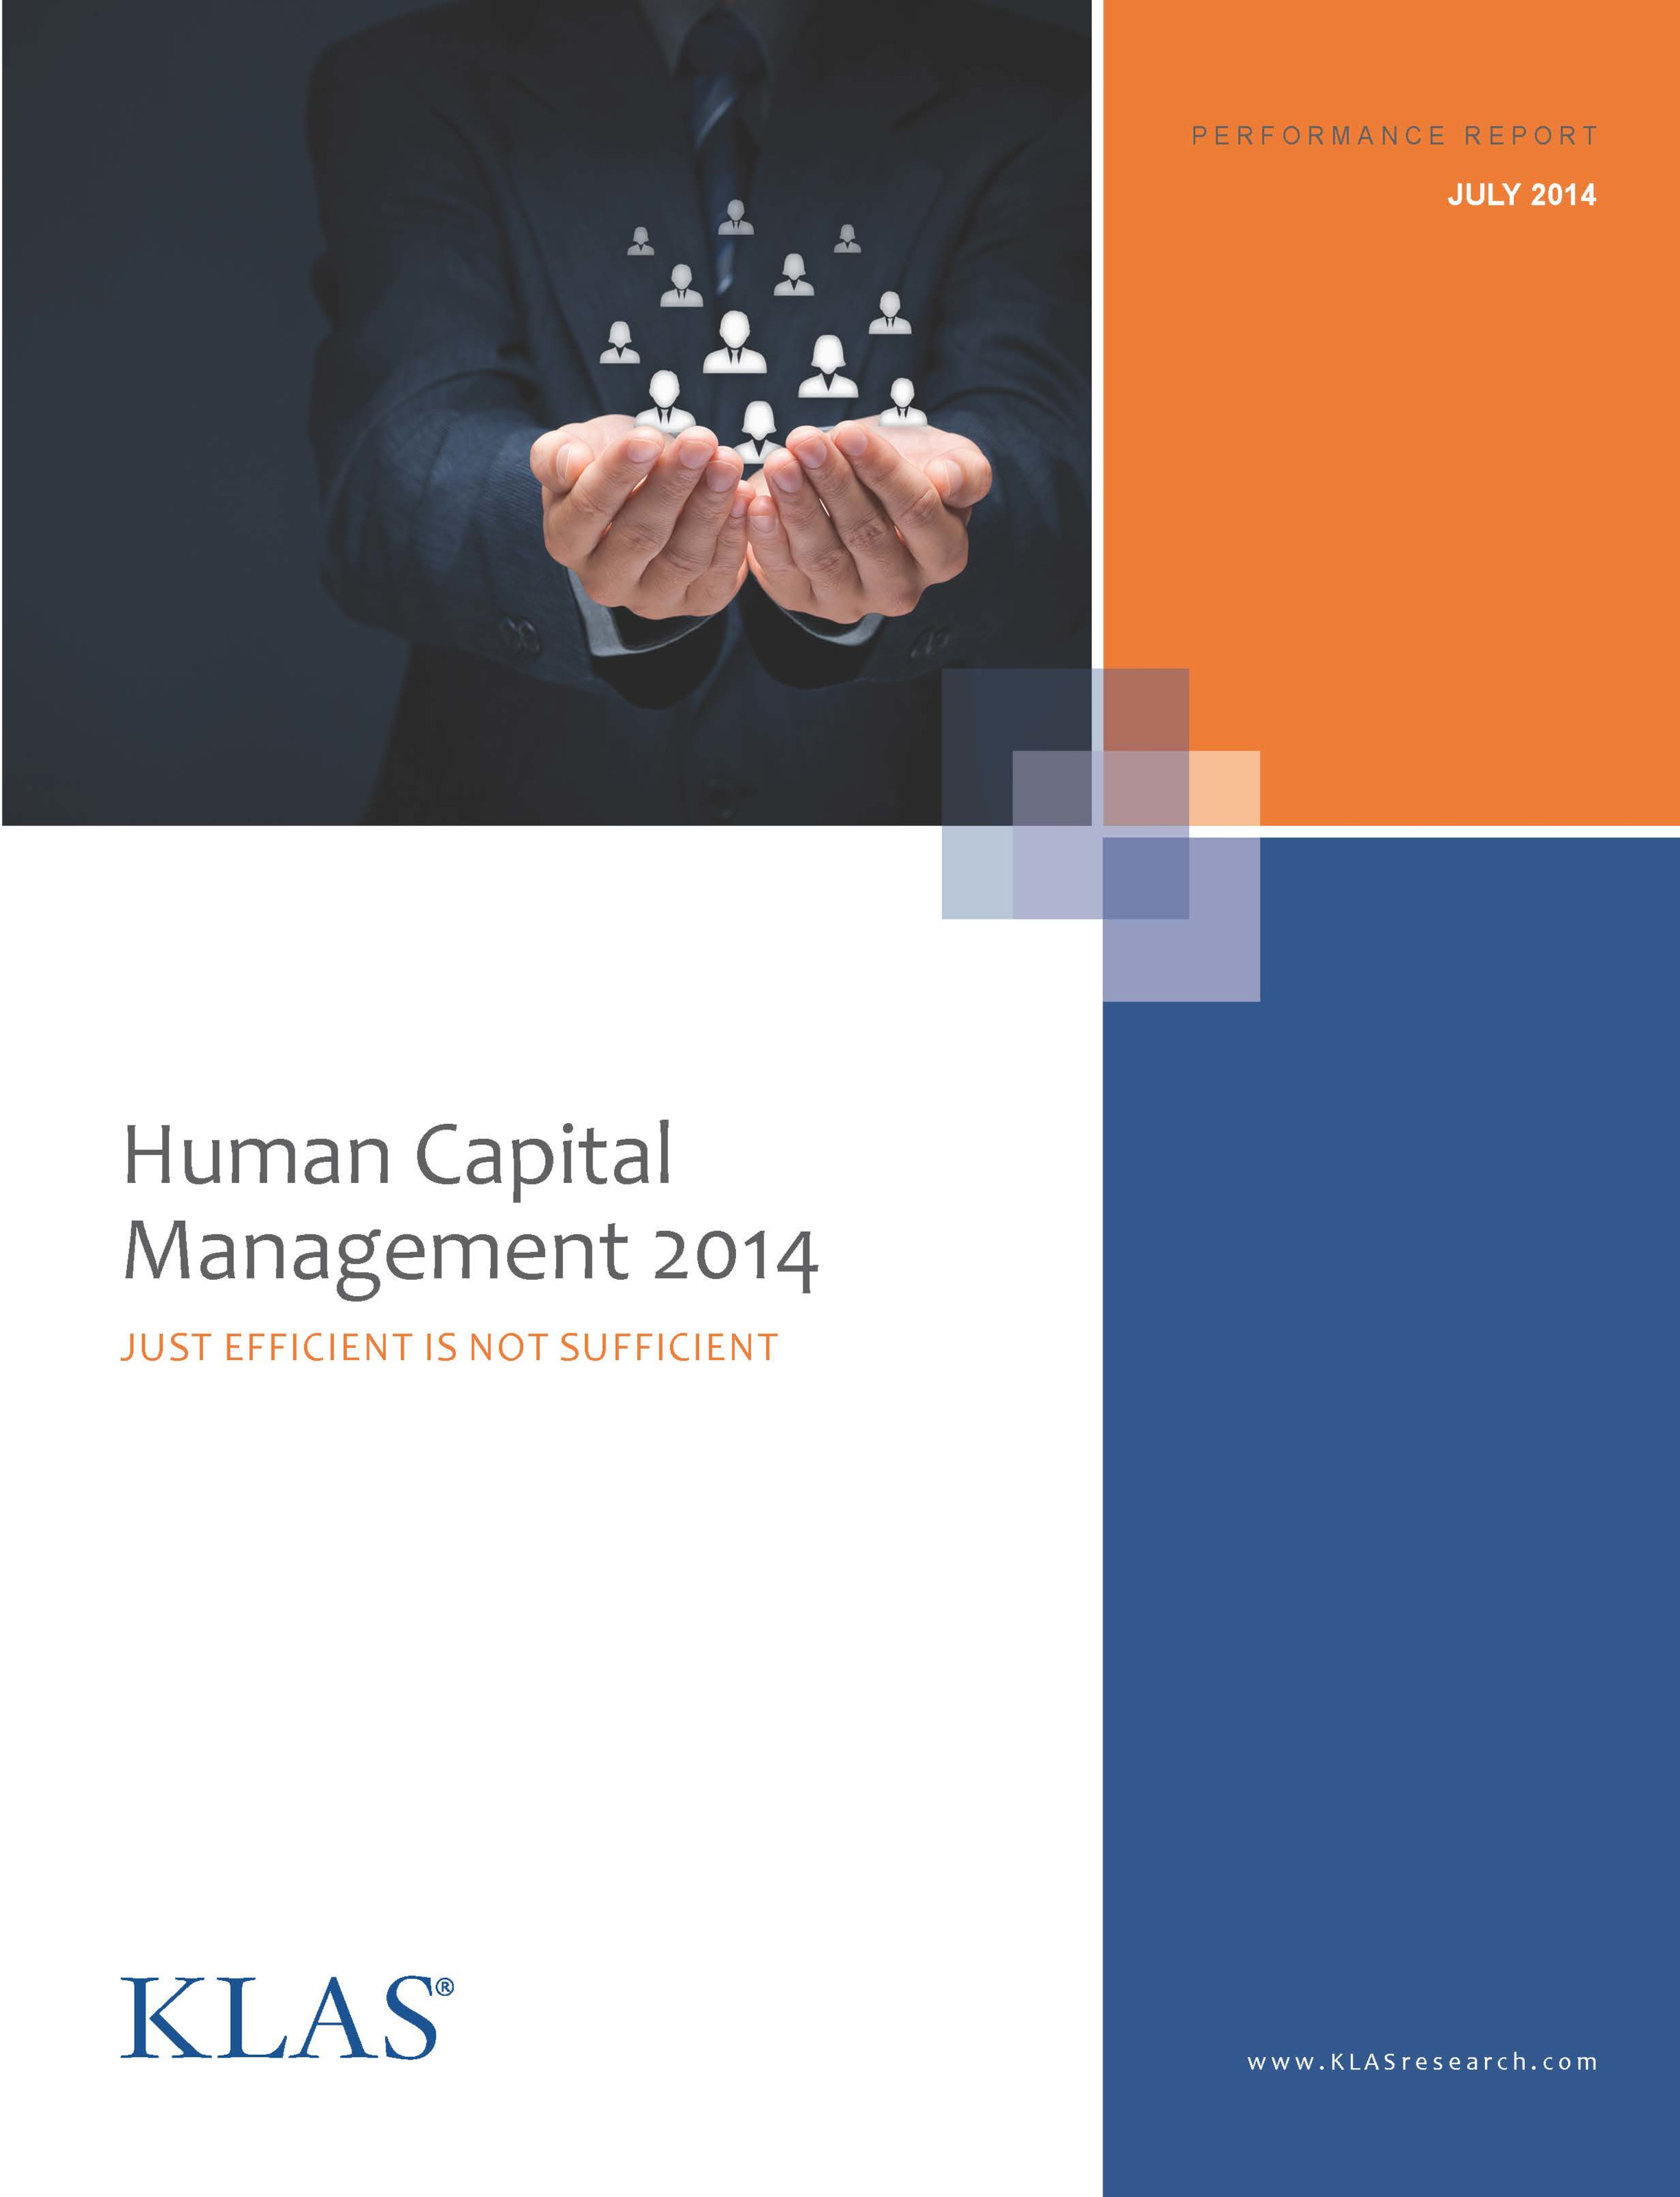 Human Capital Management 2014